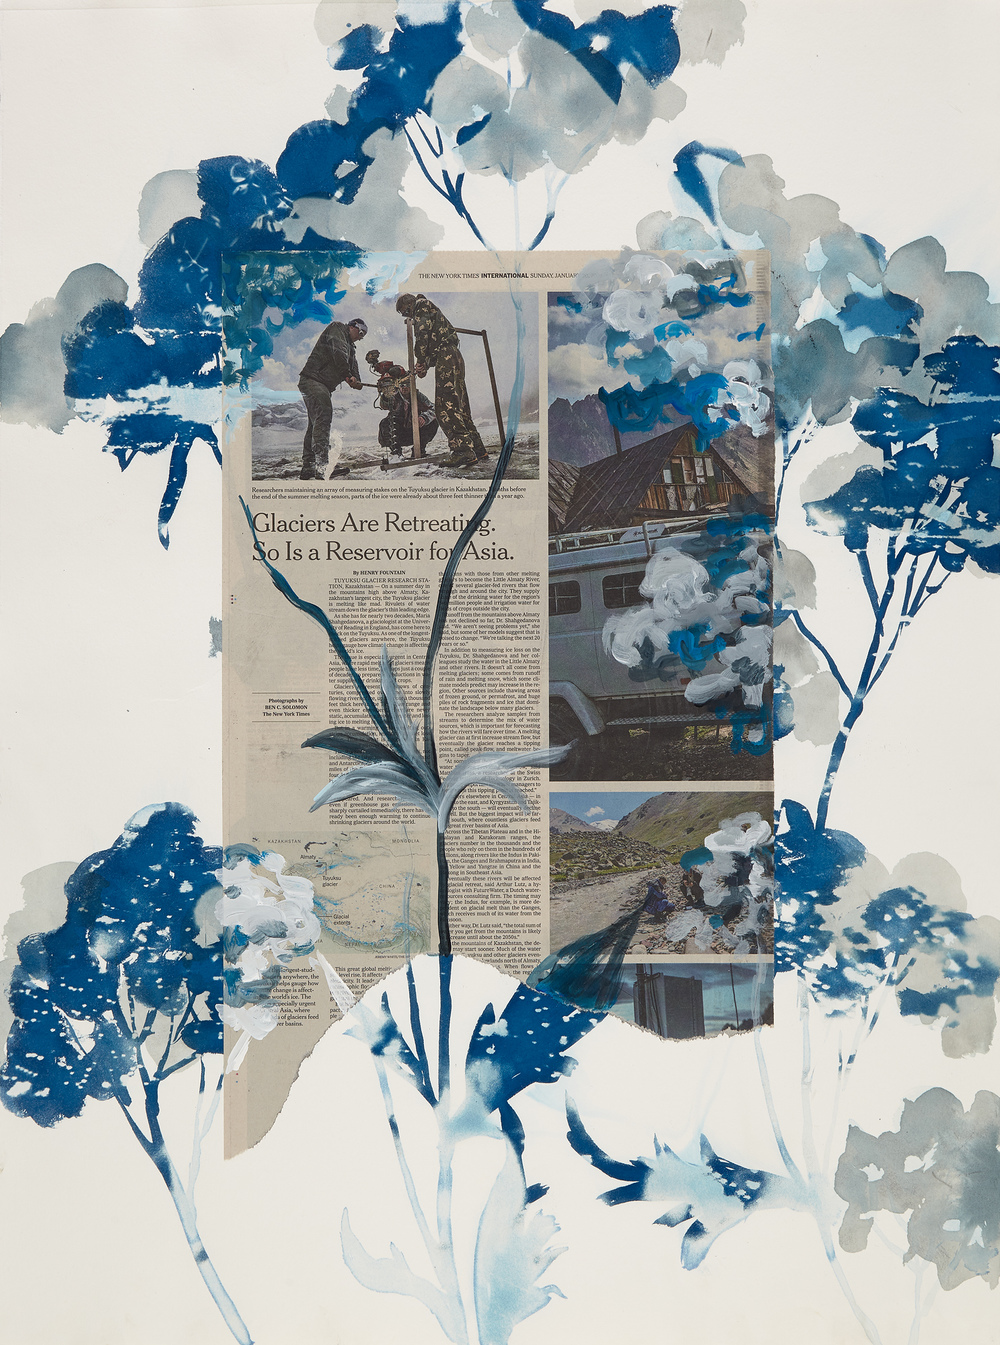 Cynthia MacCollum Ephemera Cyanotype, ink, acrylic, New York Times on BFK